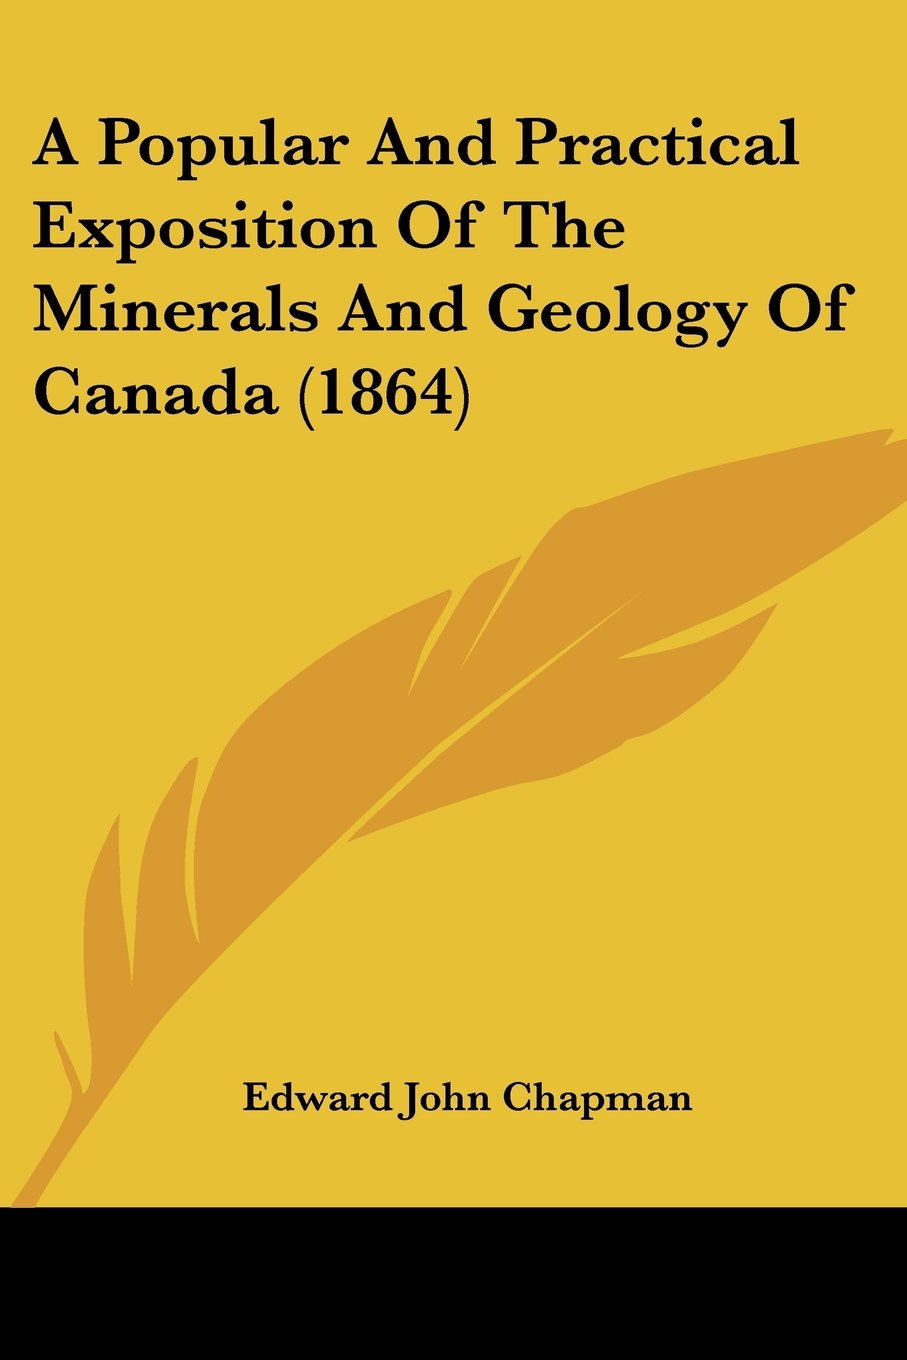 A Popular And Practical Exposition Of The Minerals And Geology Of Canada (1864) pdf